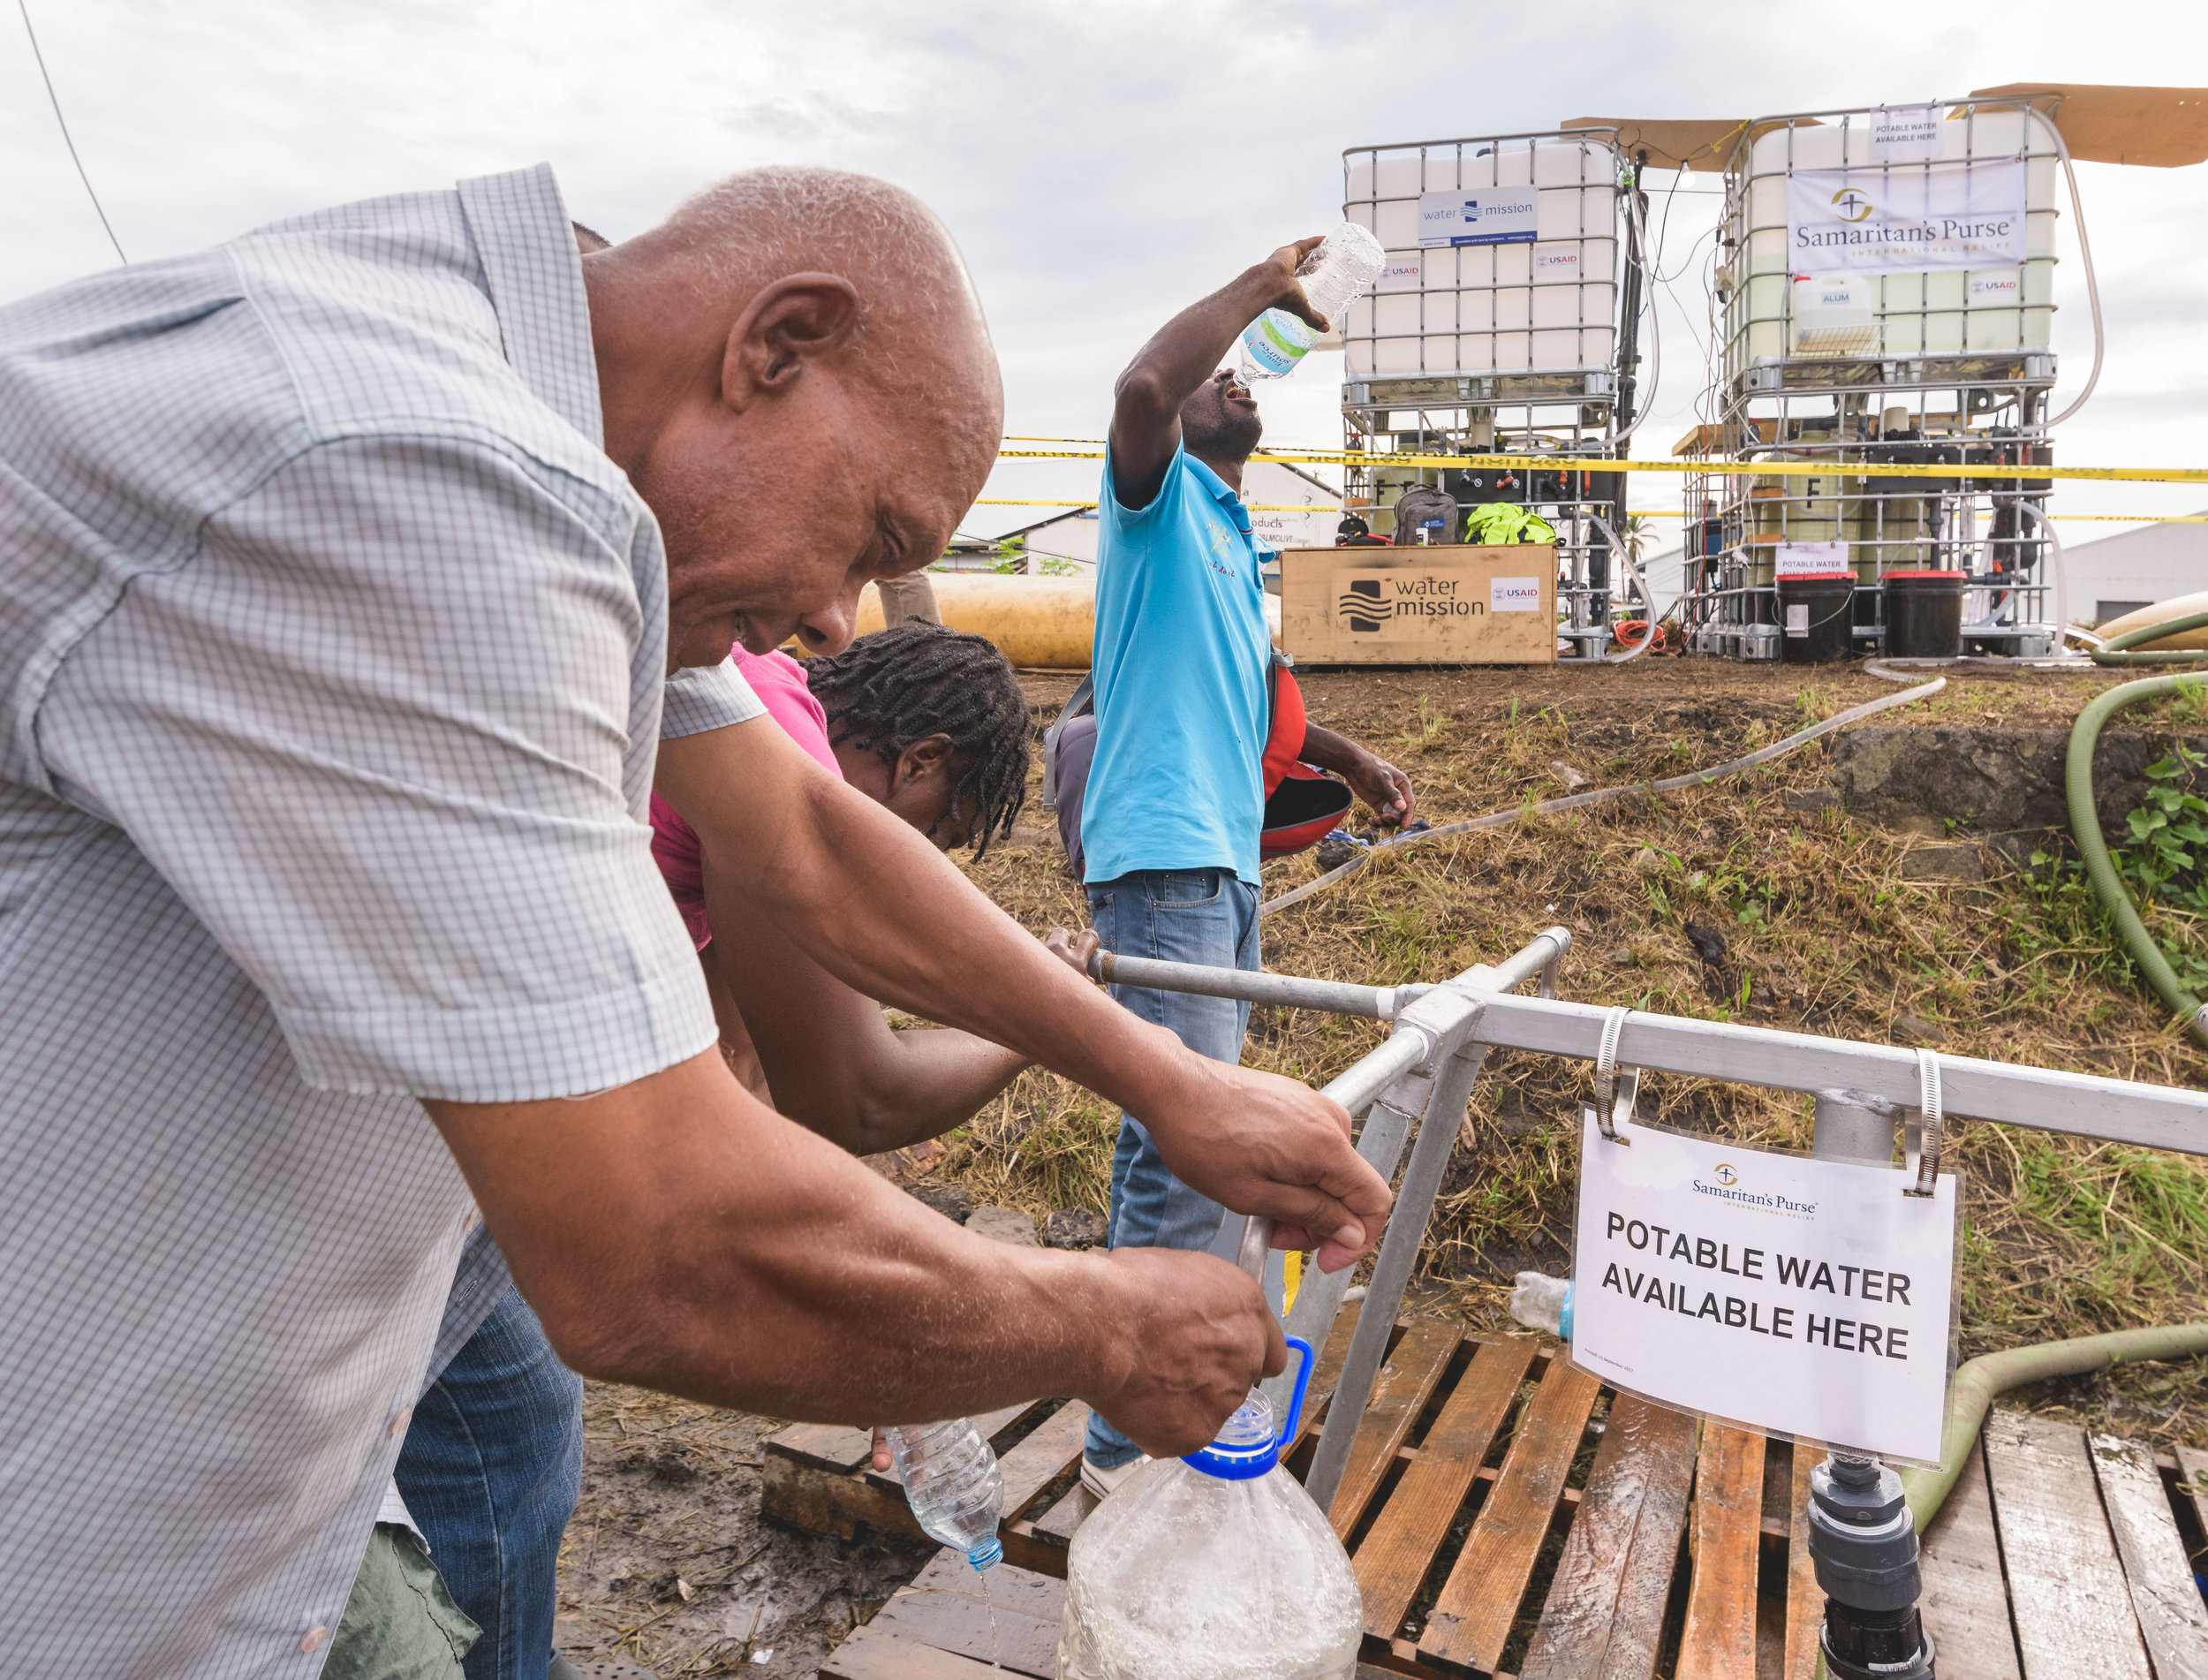 Roseau, Dominica - A Dominican man drinks fresh water, while another fills his bottle at a water distribution station. The whole island was left without power and water for weeks.